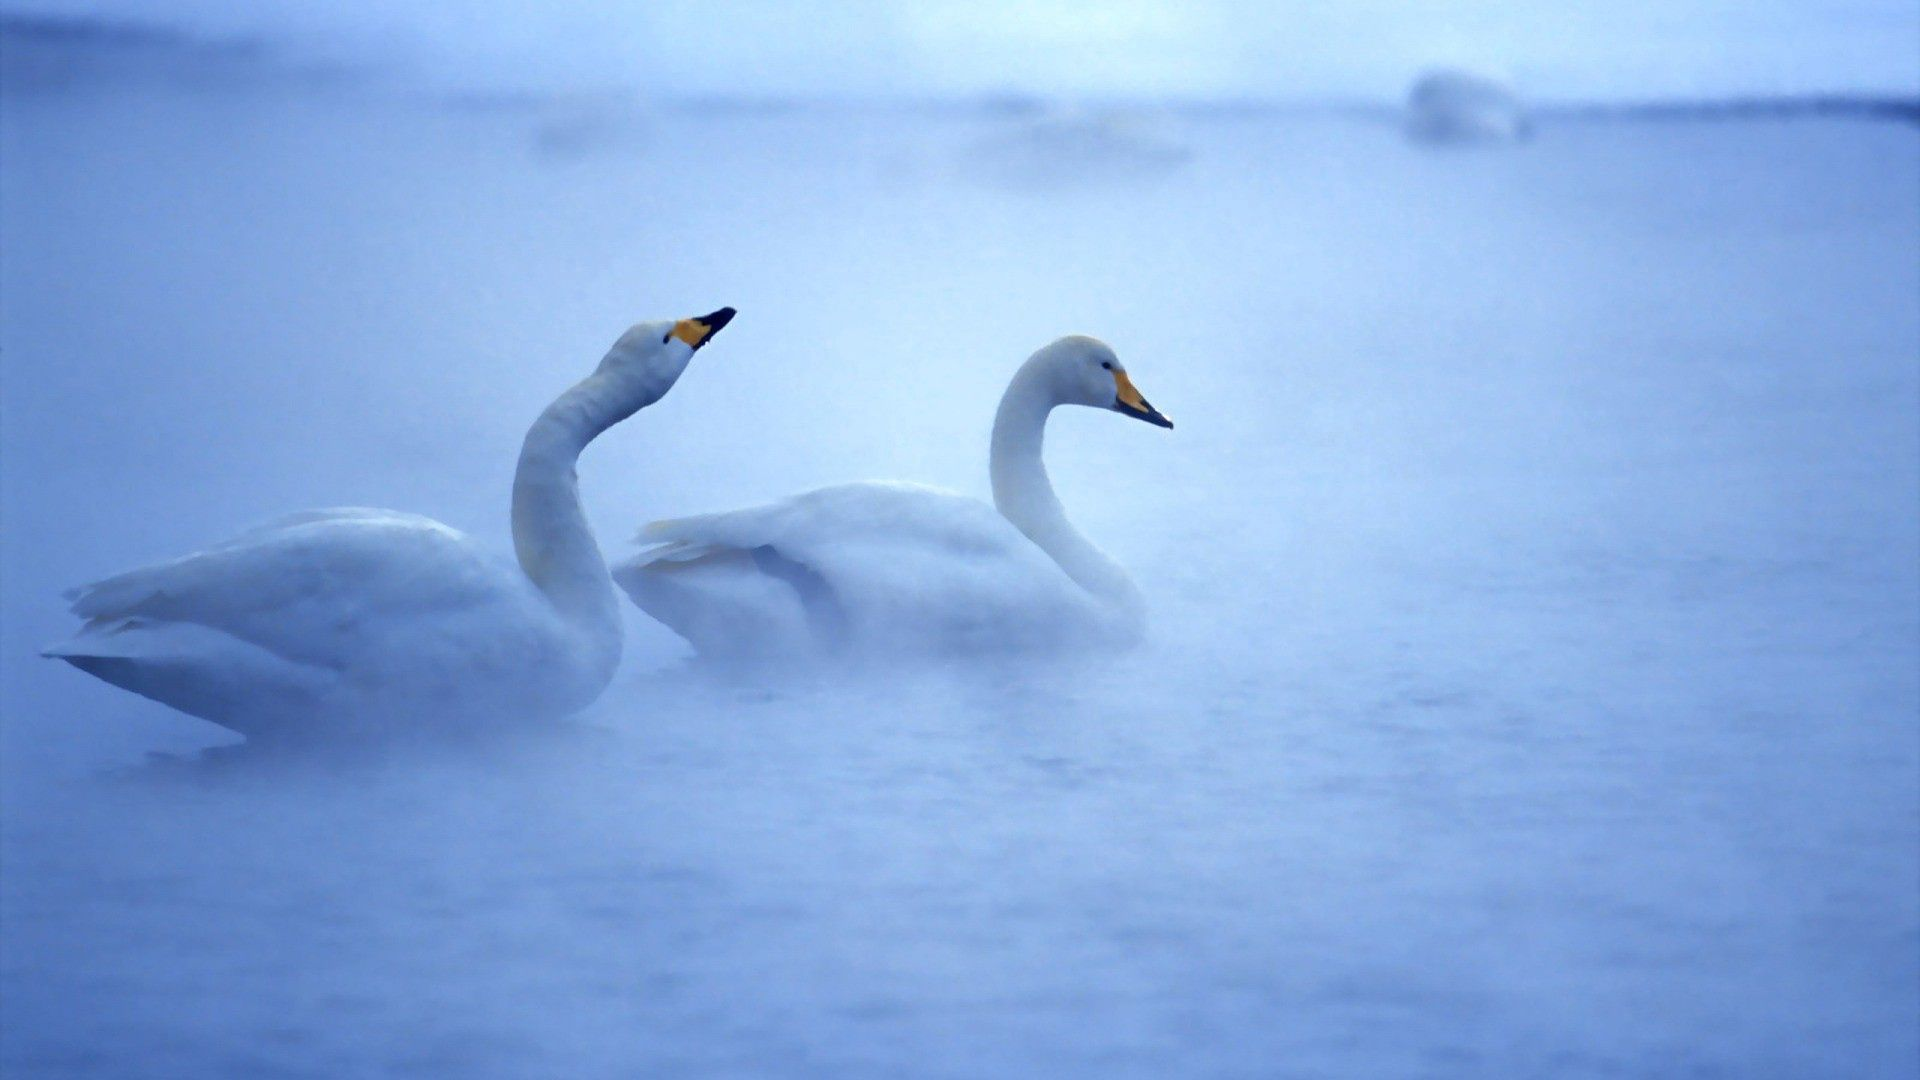 153903 download wallpaper Animals, Swans, Lake, Fog, Couple, Pair, Care, Birds screensavers and pictures for free